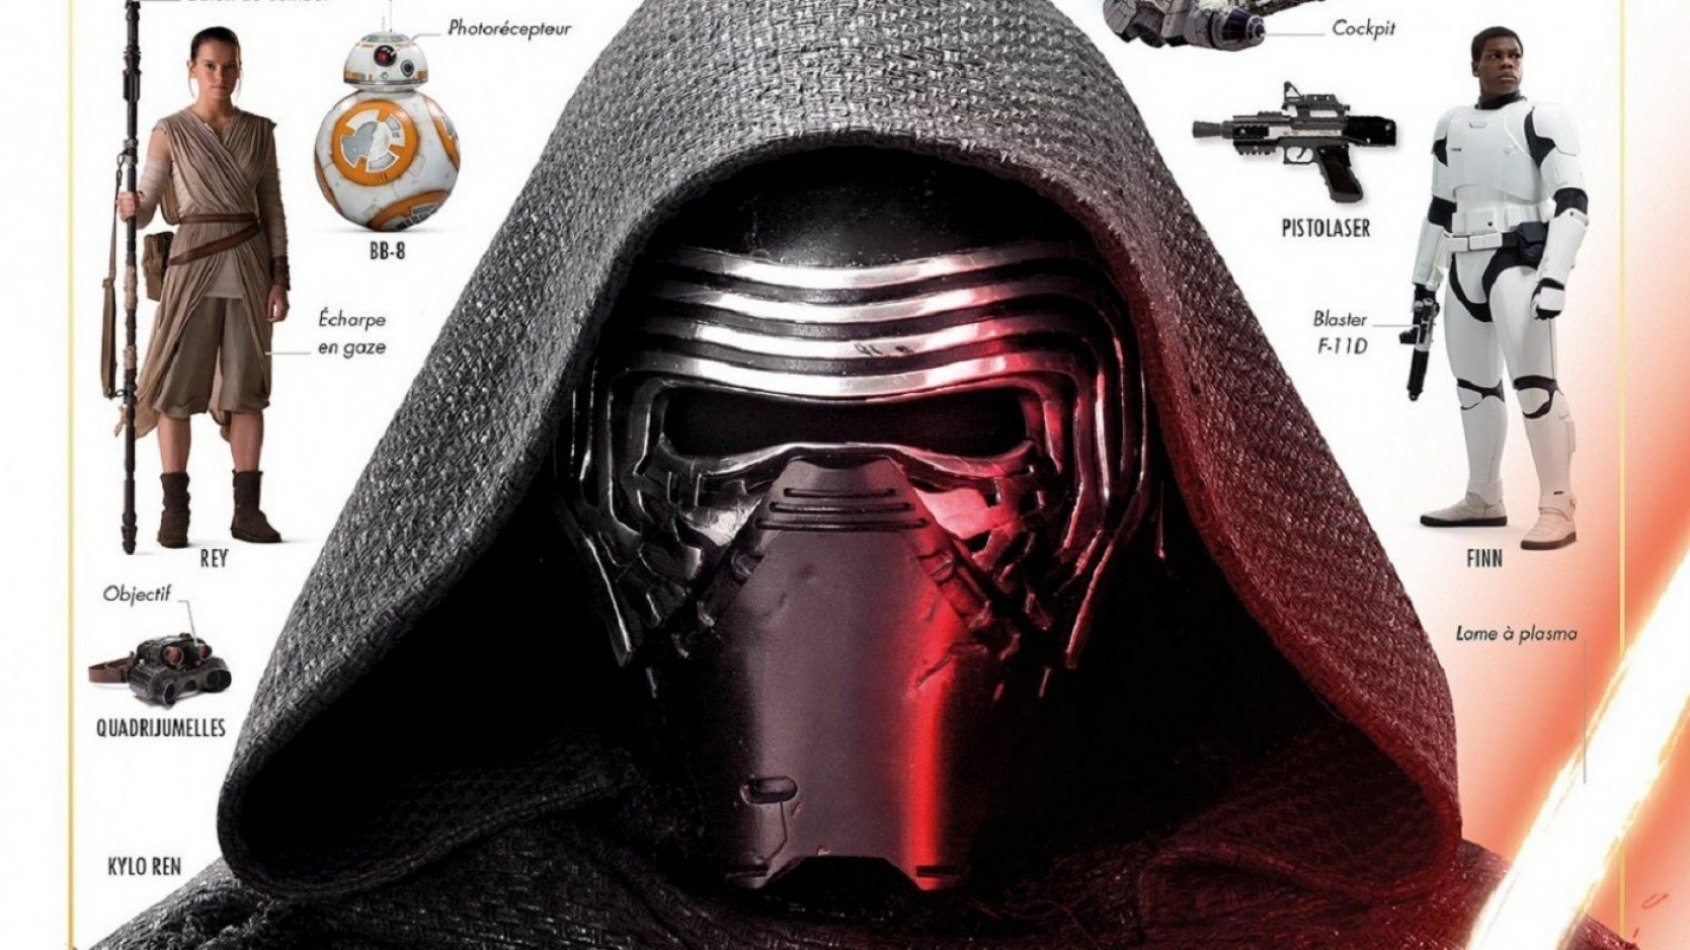 Review : L'Encyclop�die Illustr�e de Star Wars : Le R�veil de la Force